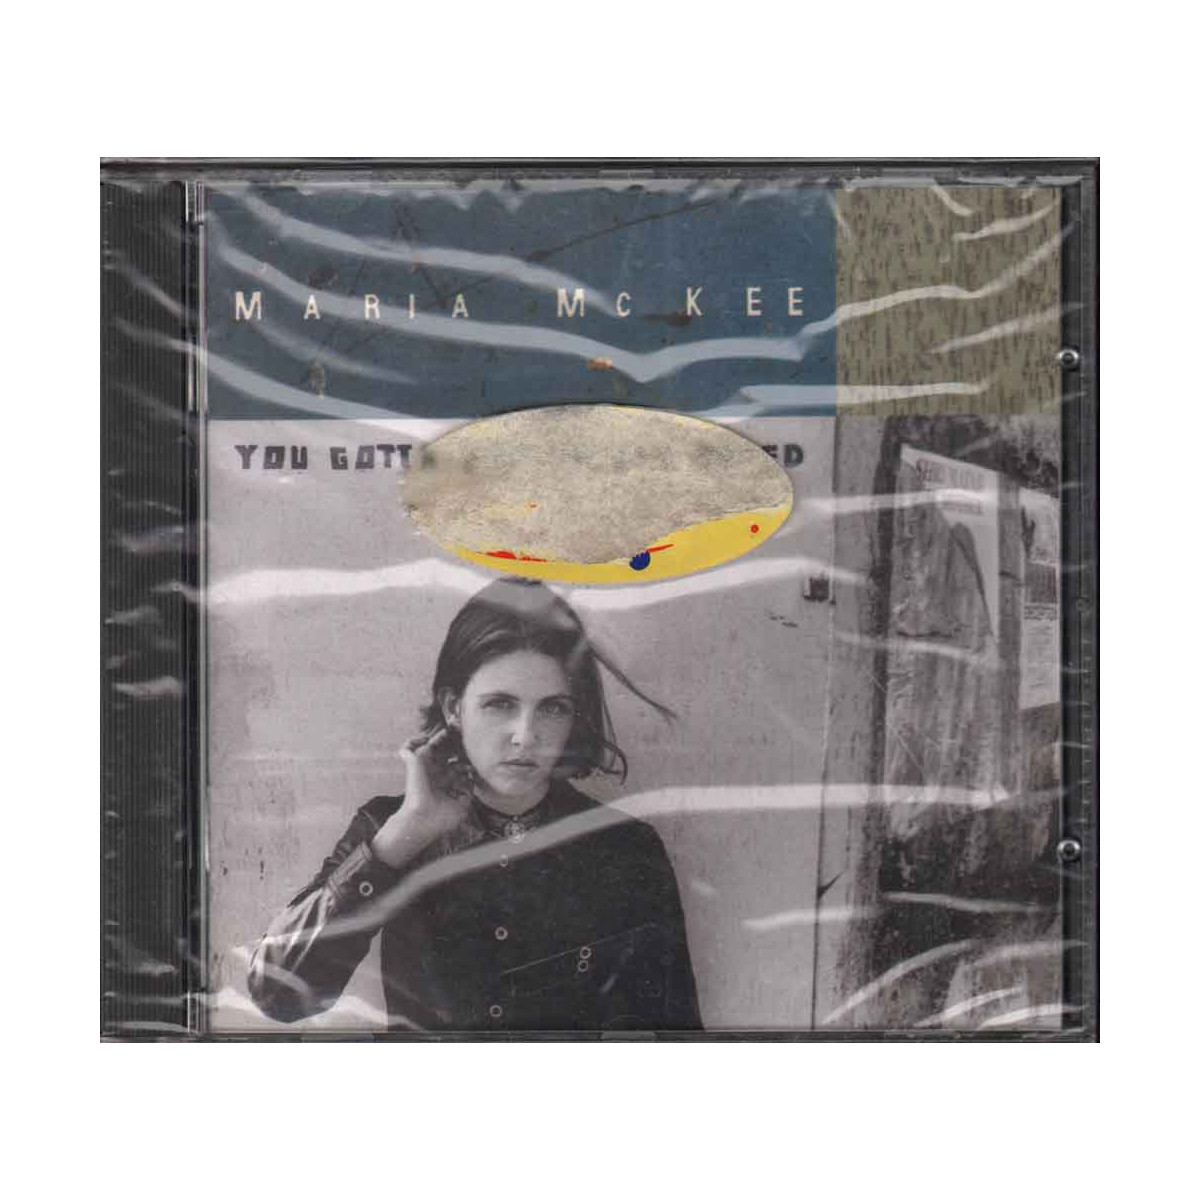 Maria McKee  Cd You Gotta Sin To Get Saved - Germania Sigillato 0720642450826